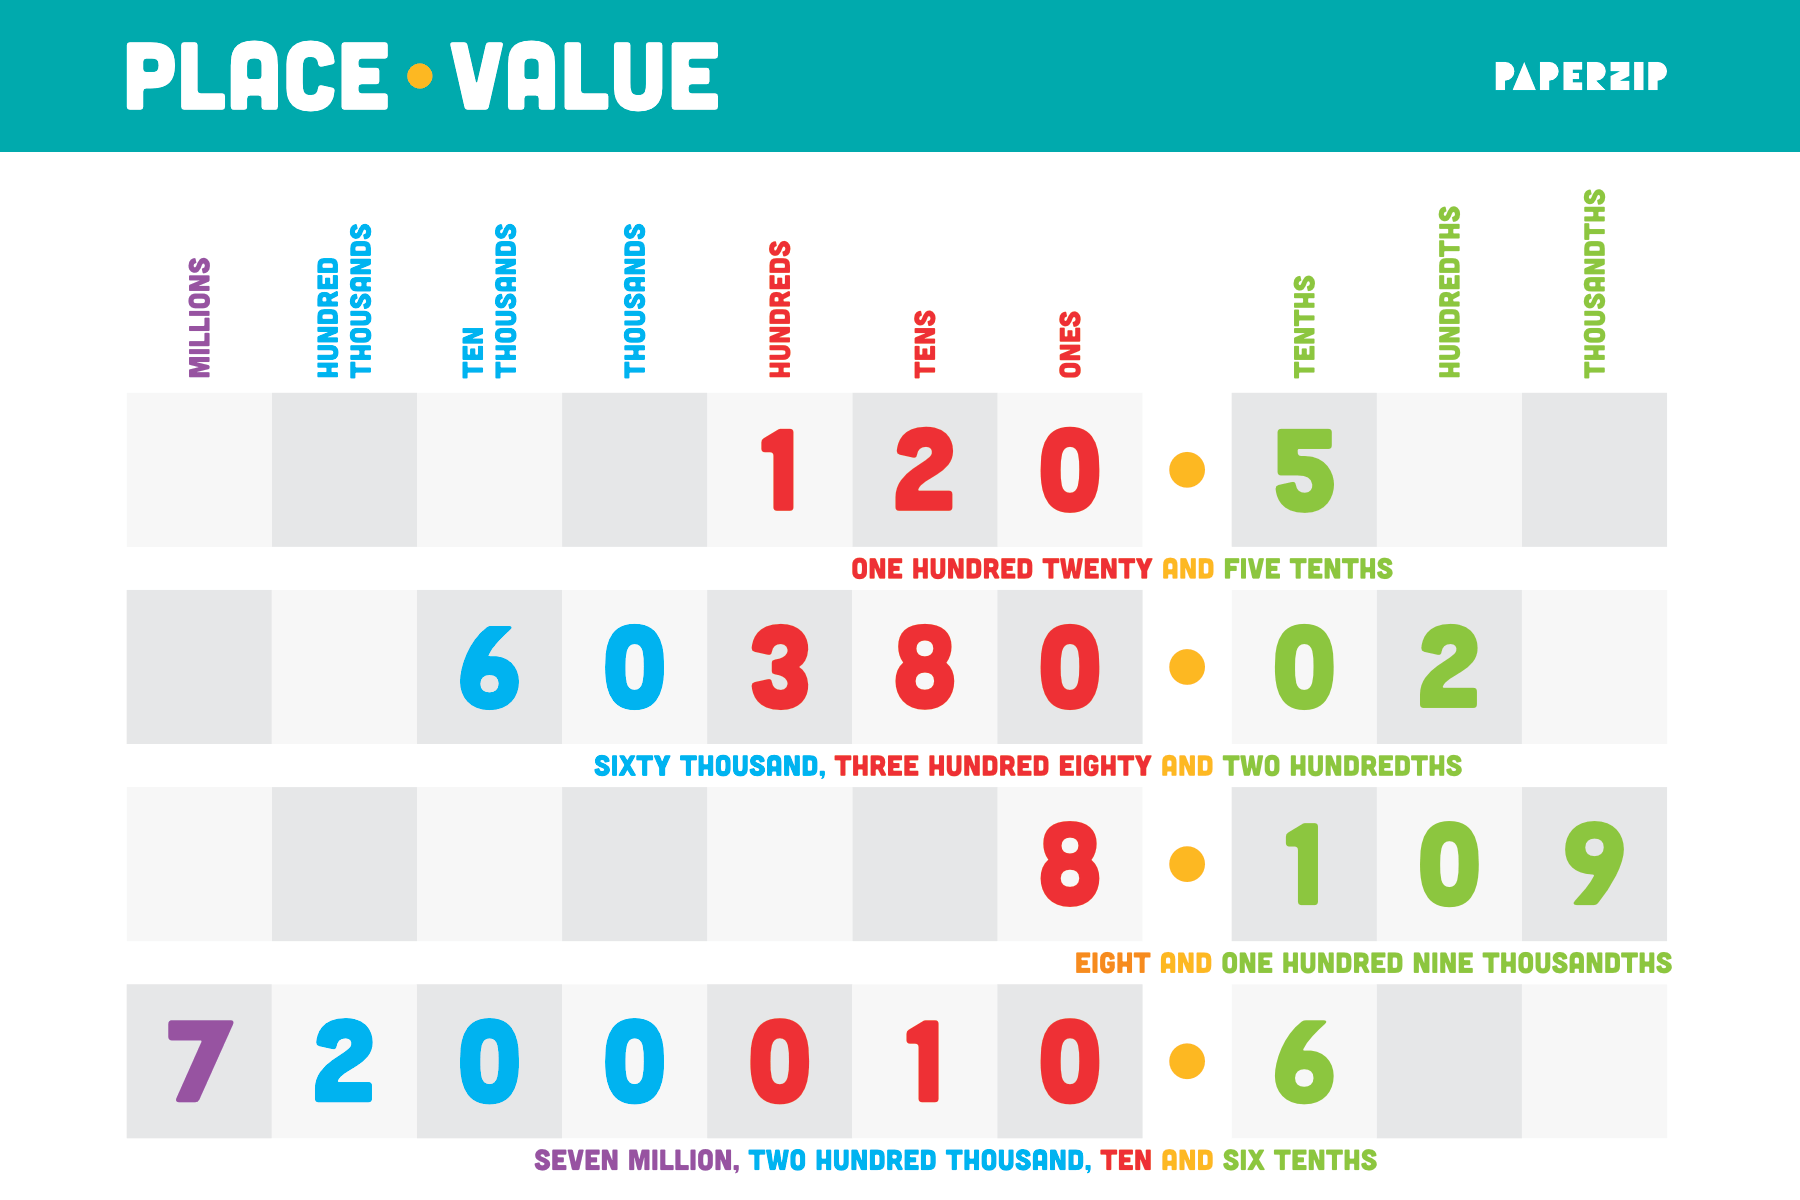 picture about Place Value Strips Printable identify PAPERZIP - Cost-free Coaching Products